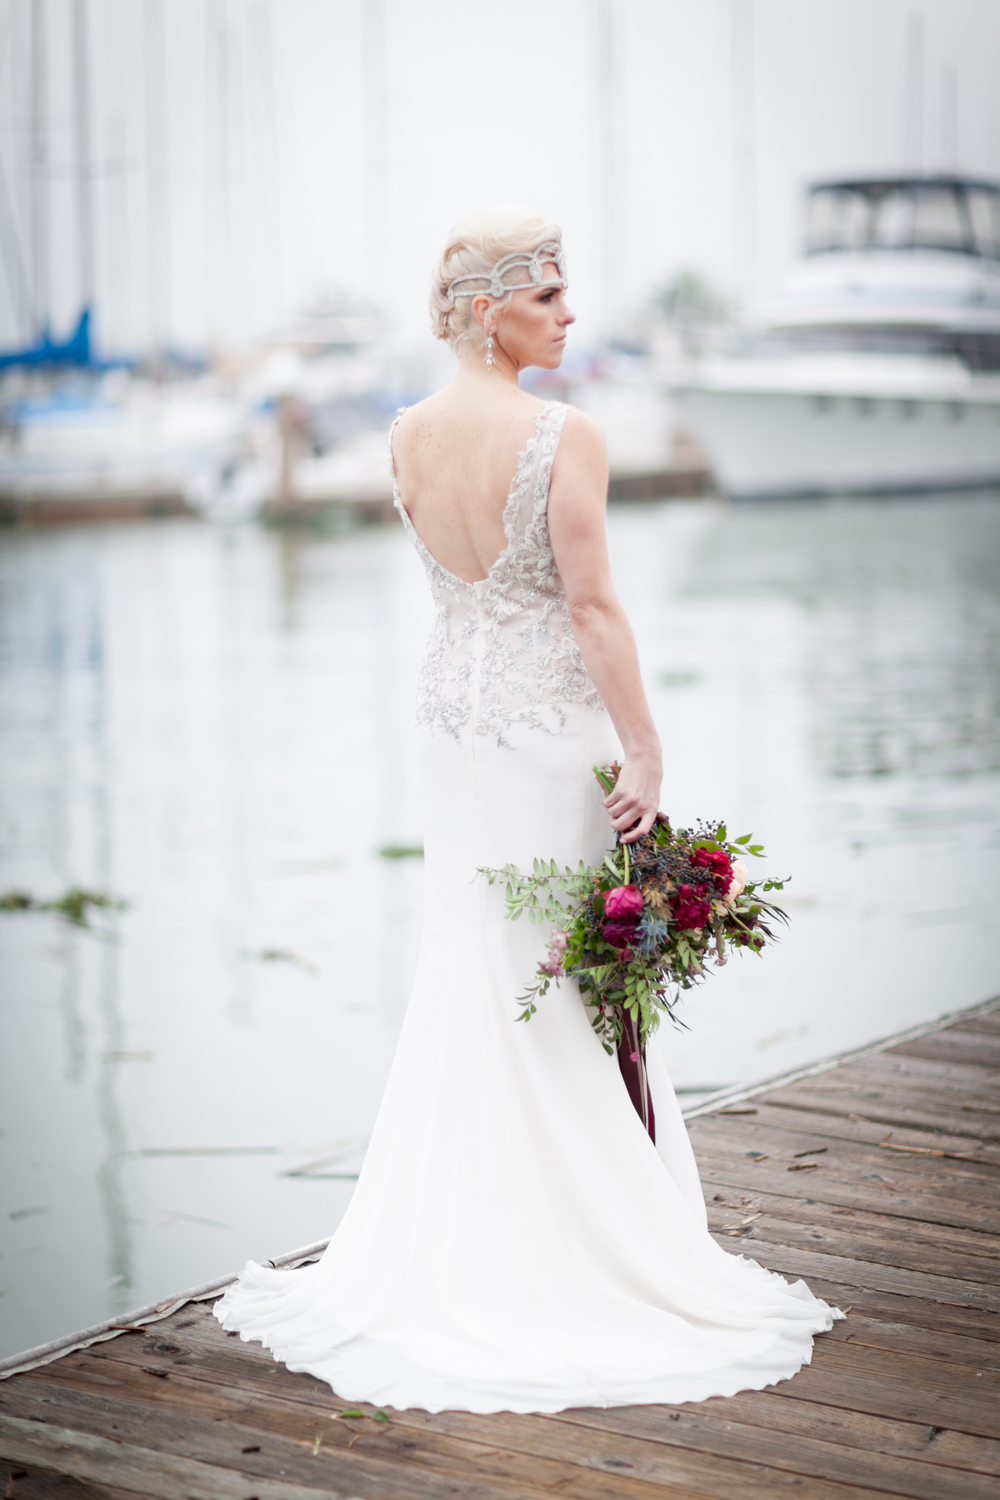 Lighthouse-at-Glen-Cove-Marina-Wedding-by-Olivia-Smartt-8339.jpg